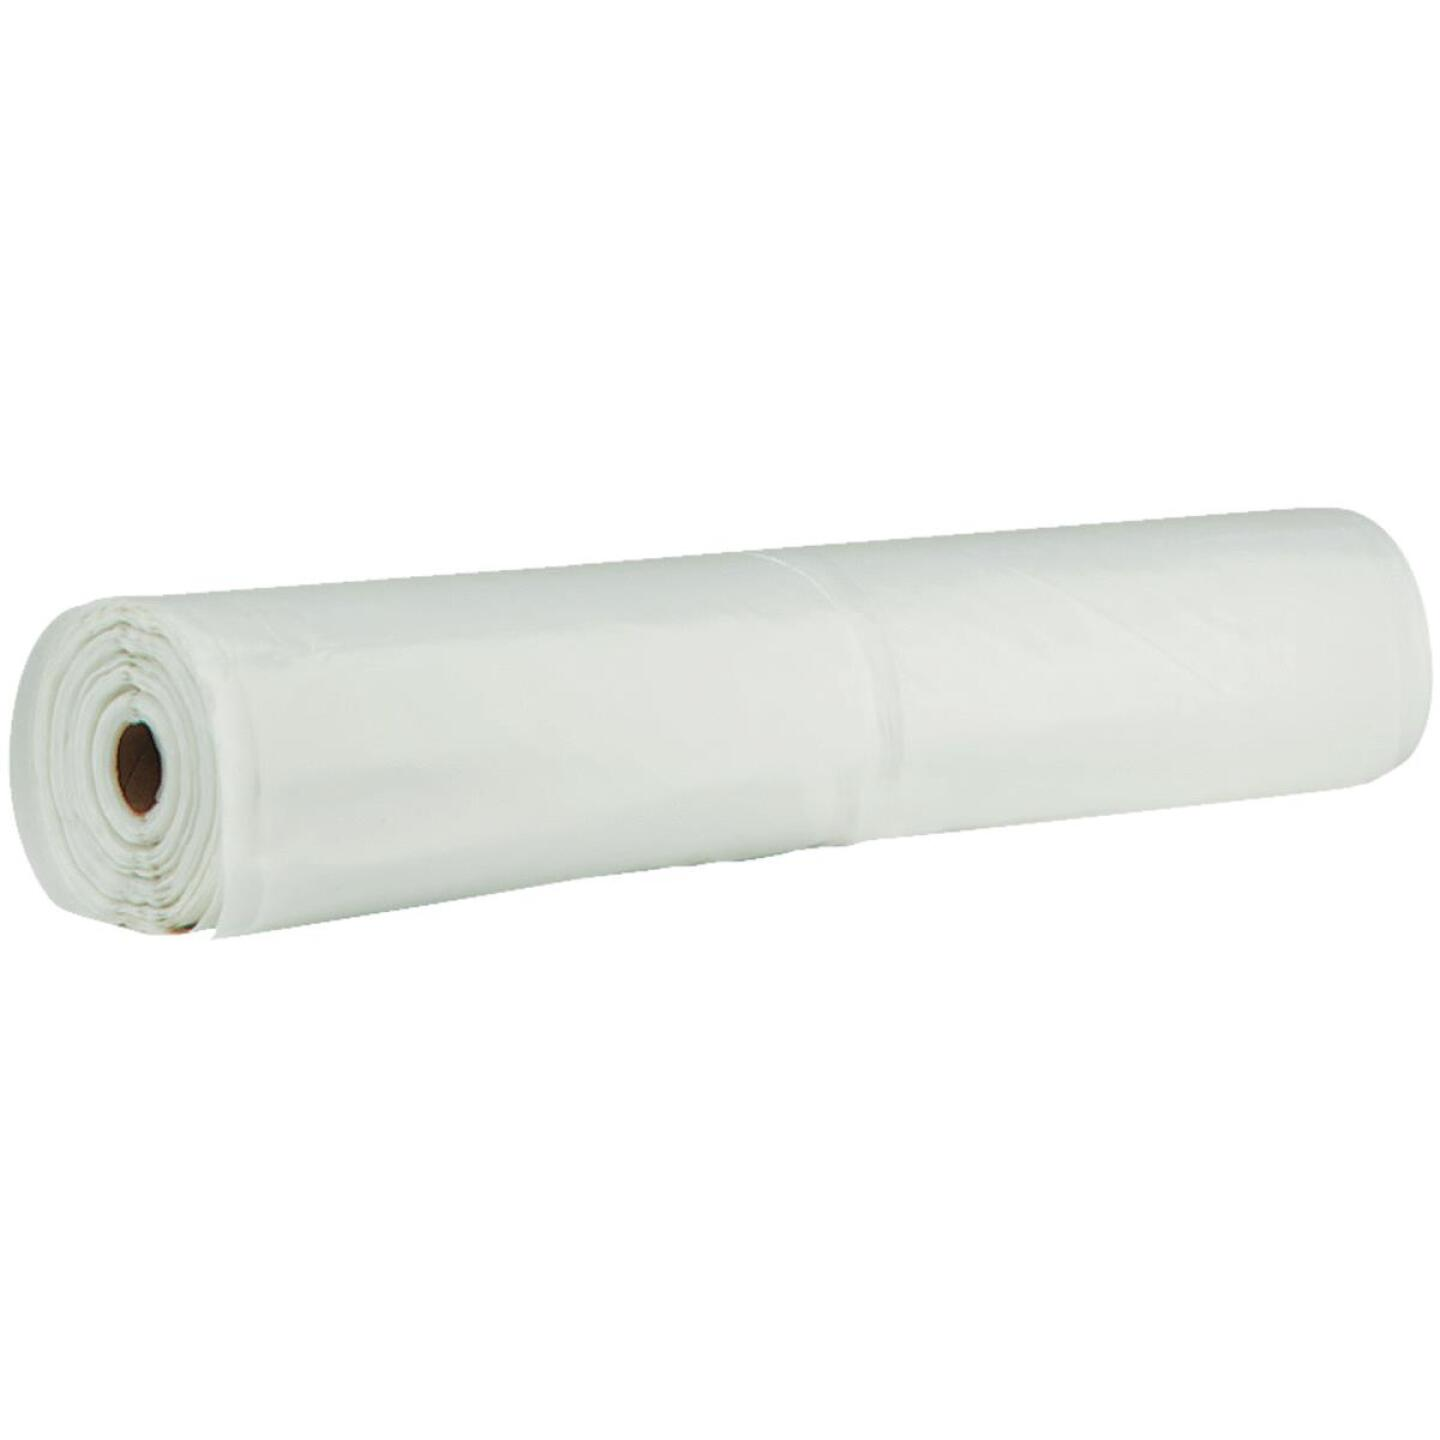 Film-Gard 12 Ft. x 50 Ft. Clear 6 Mil. Polyethylene Sheeting Image 1